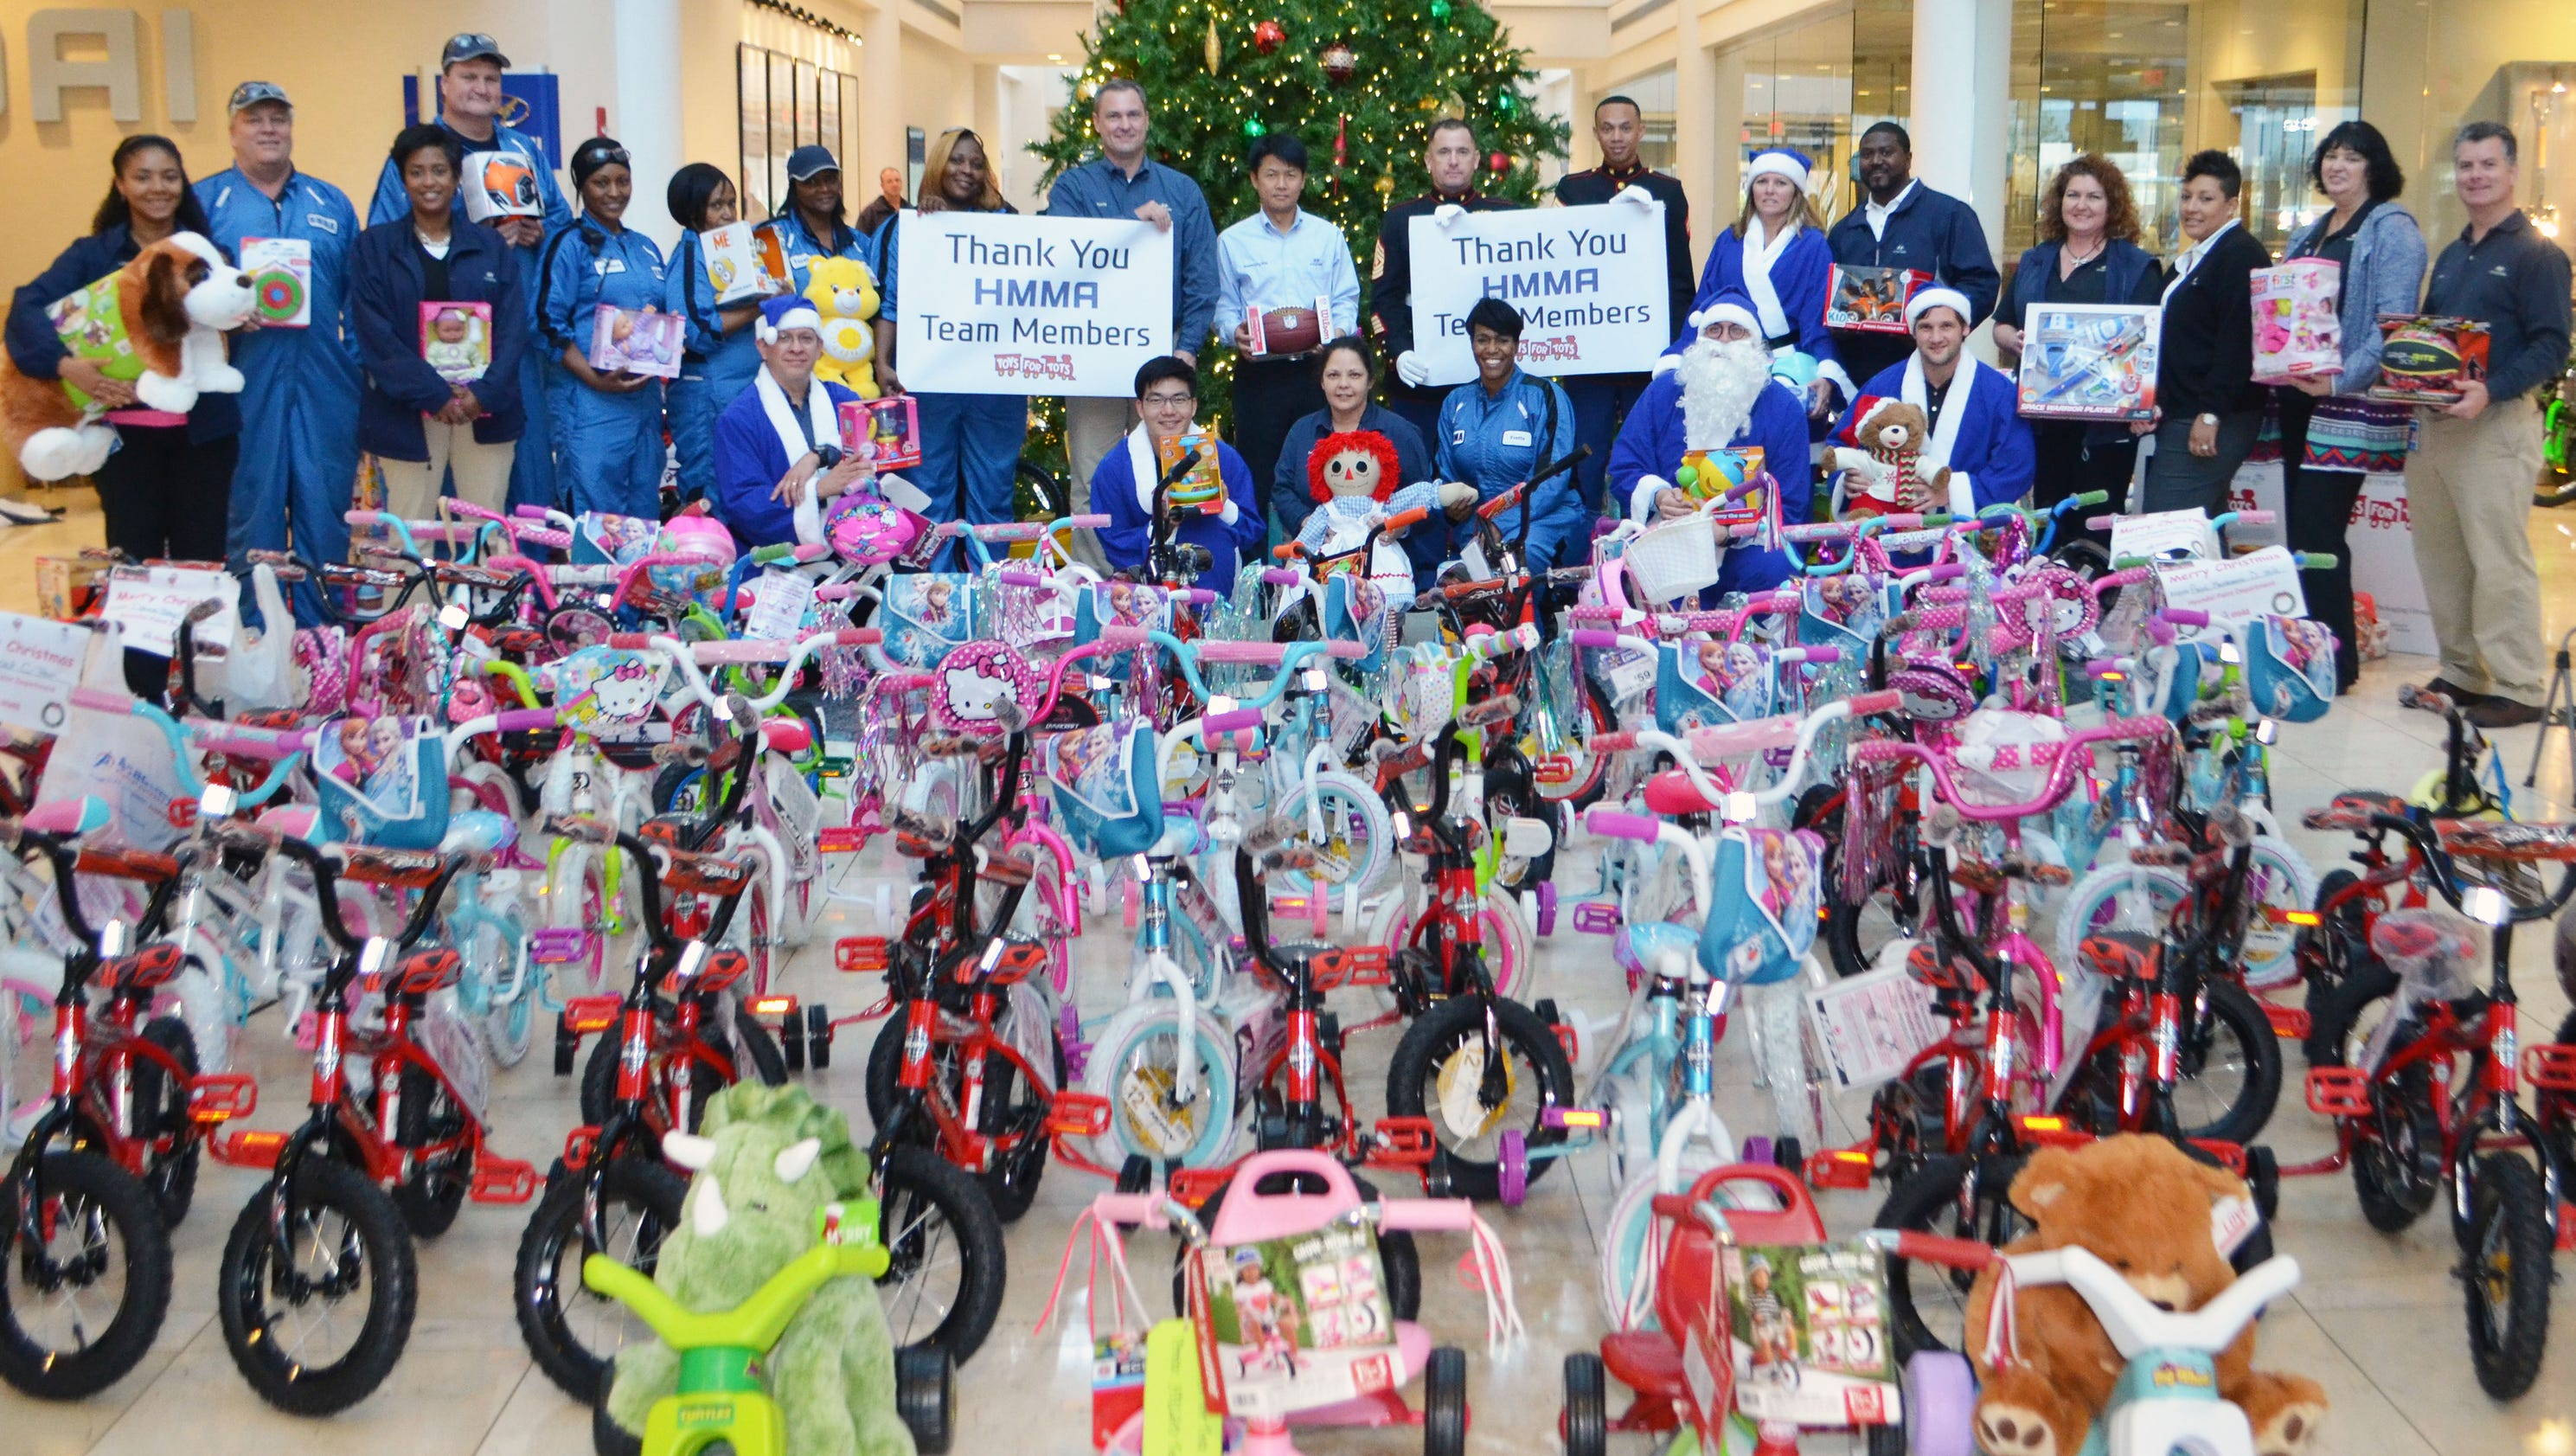 Bikes Toys For Tots Or Bust : Hyundai gives bikes for area kids